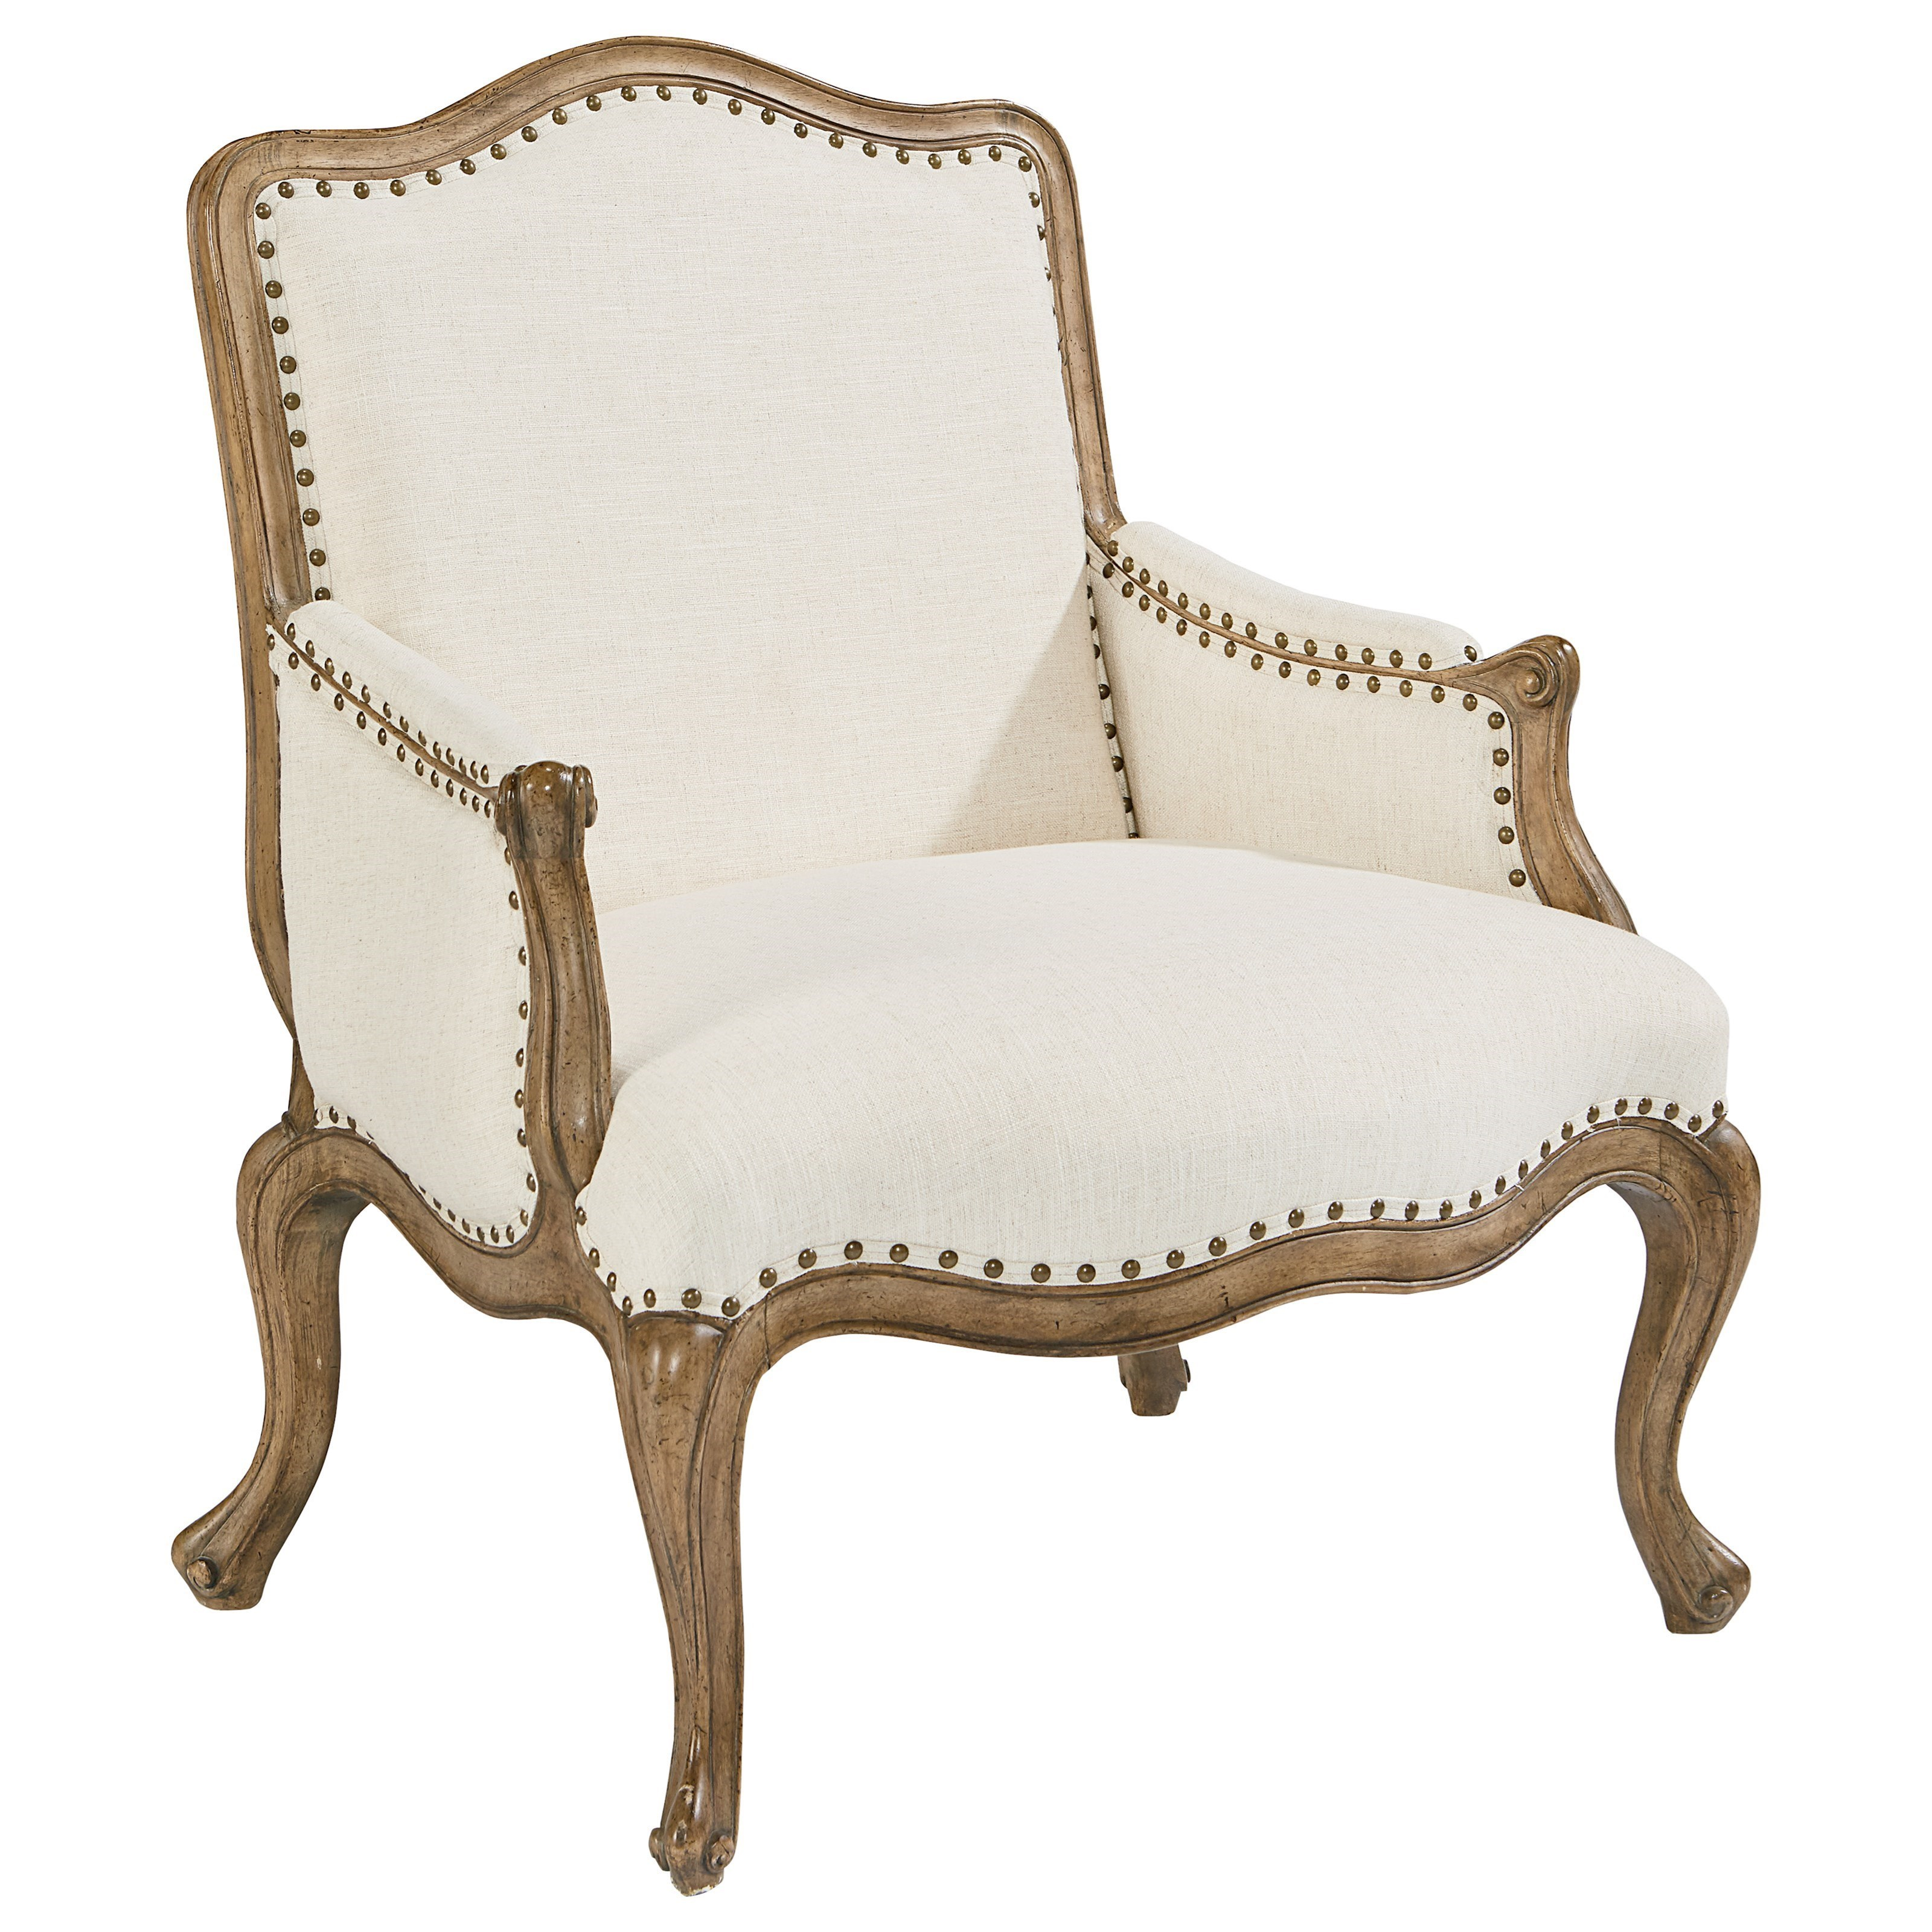 magnolia home by joanna gaines accent chairs reverie upholstered chair